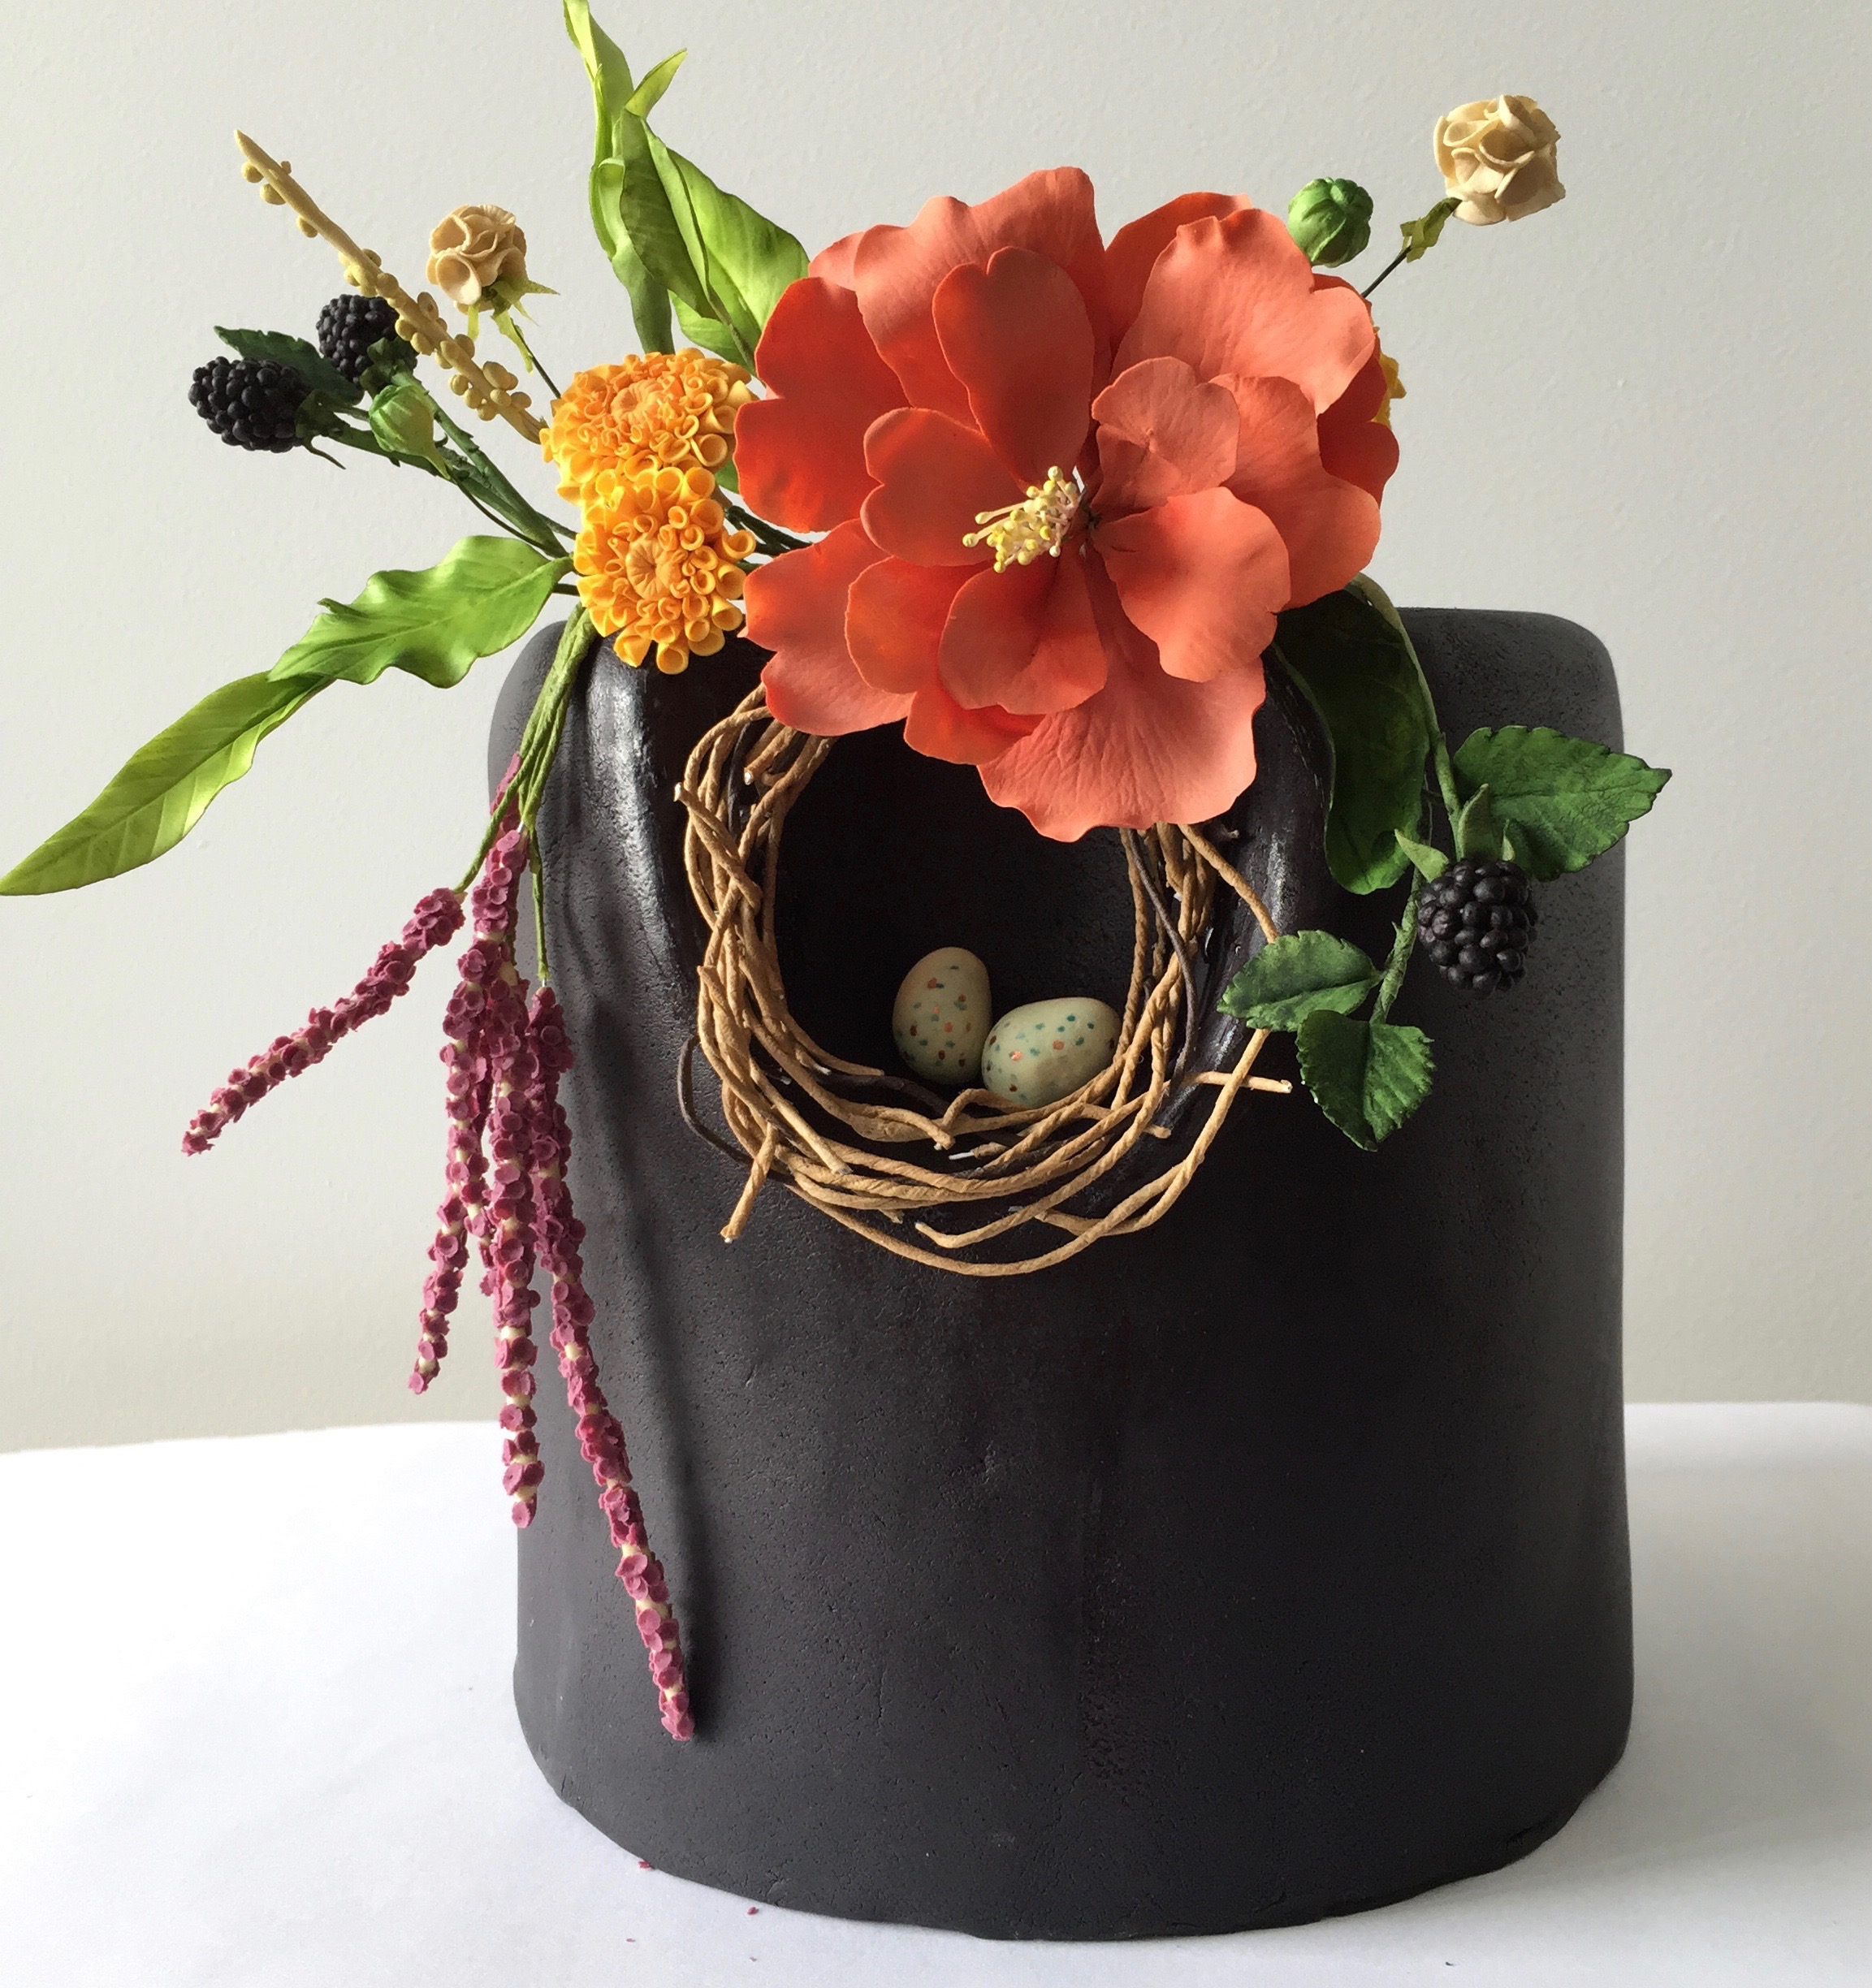 Black mini cake with red sugar flower poppies